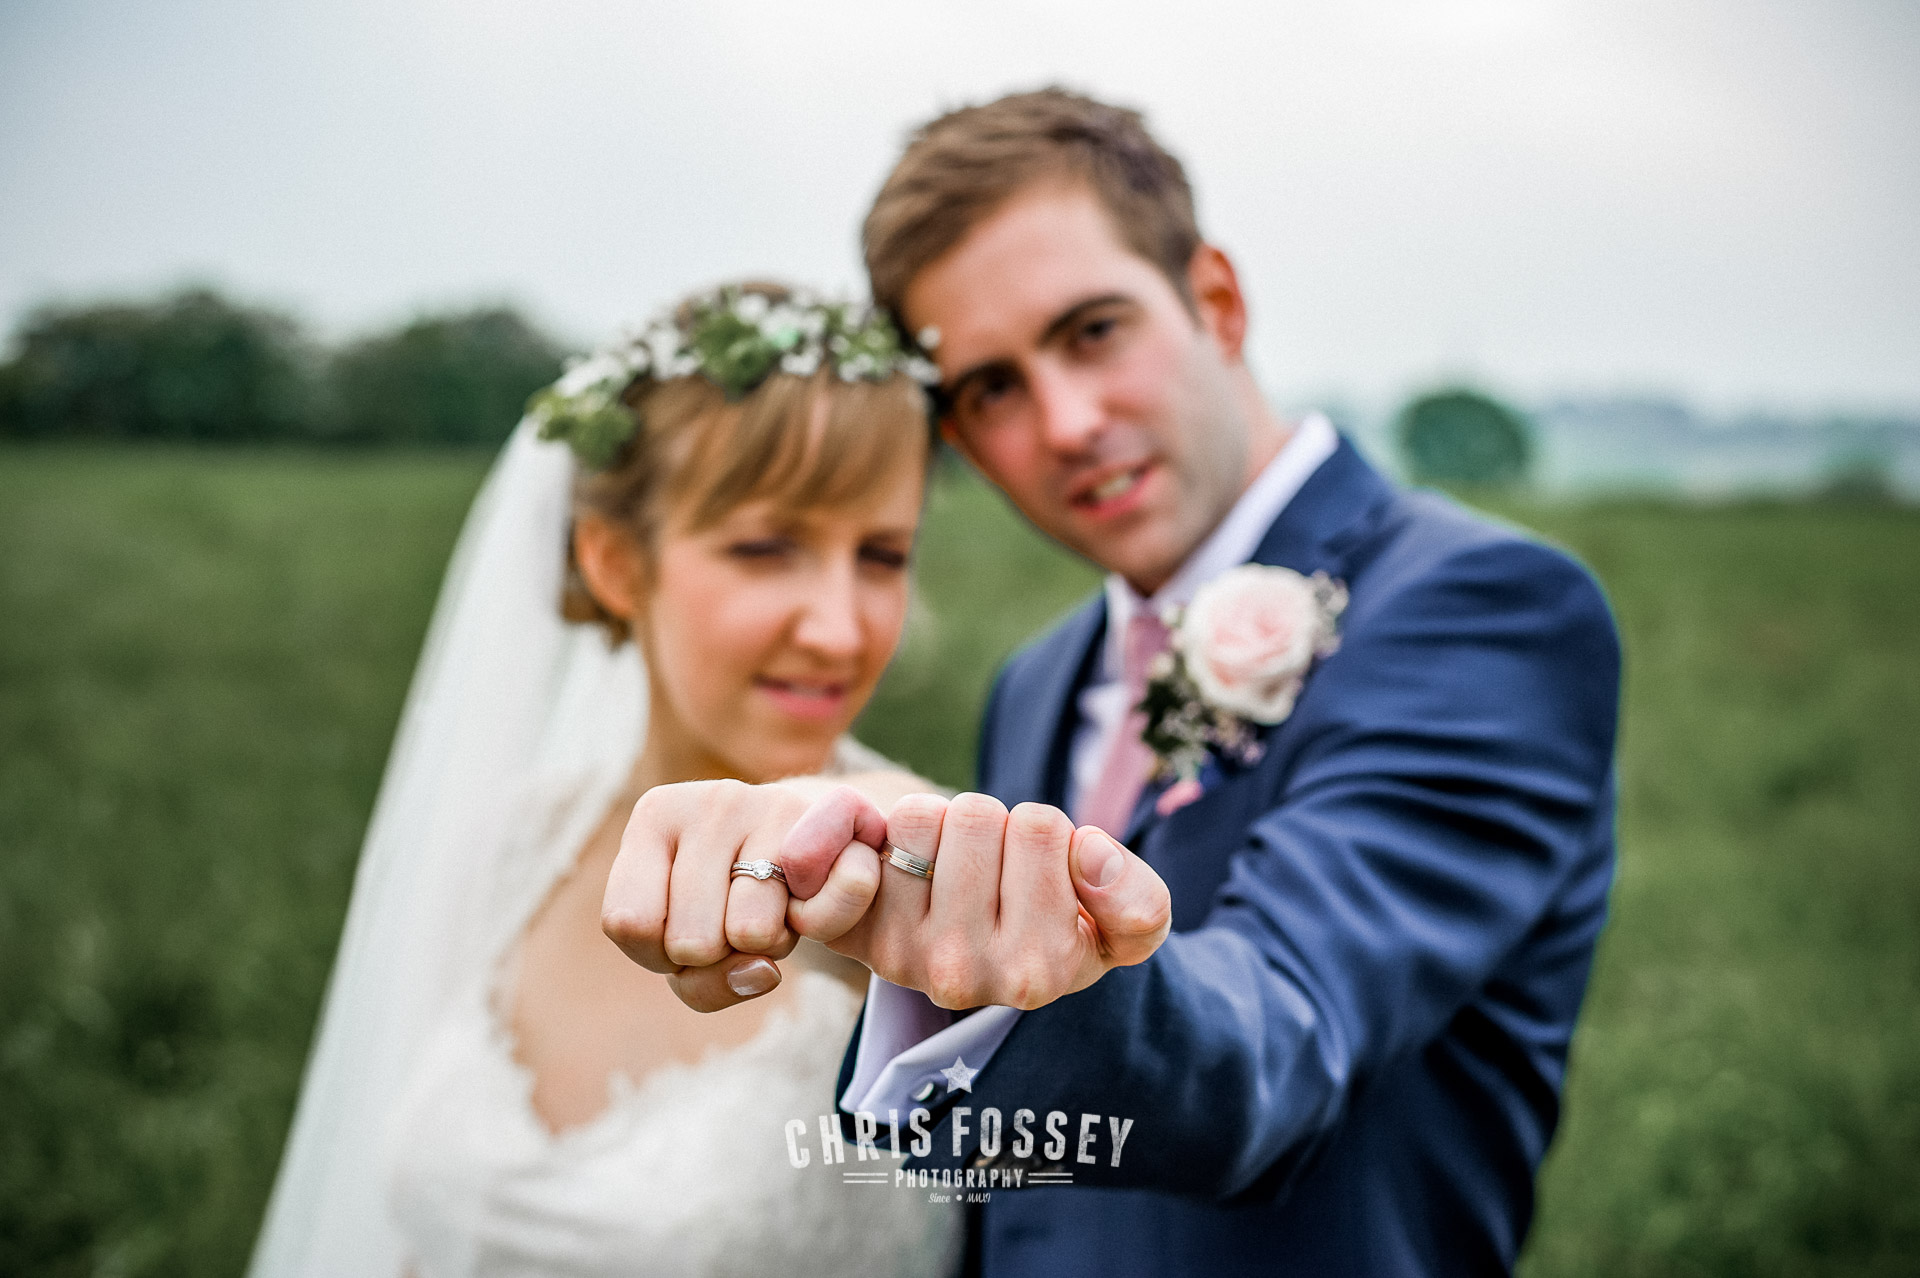 Warwickshire Wedding Photography Portfolio-Northamptonshire Wedding Photography Skylark Hope Farm Daventry by Chris Fossey Photography-181